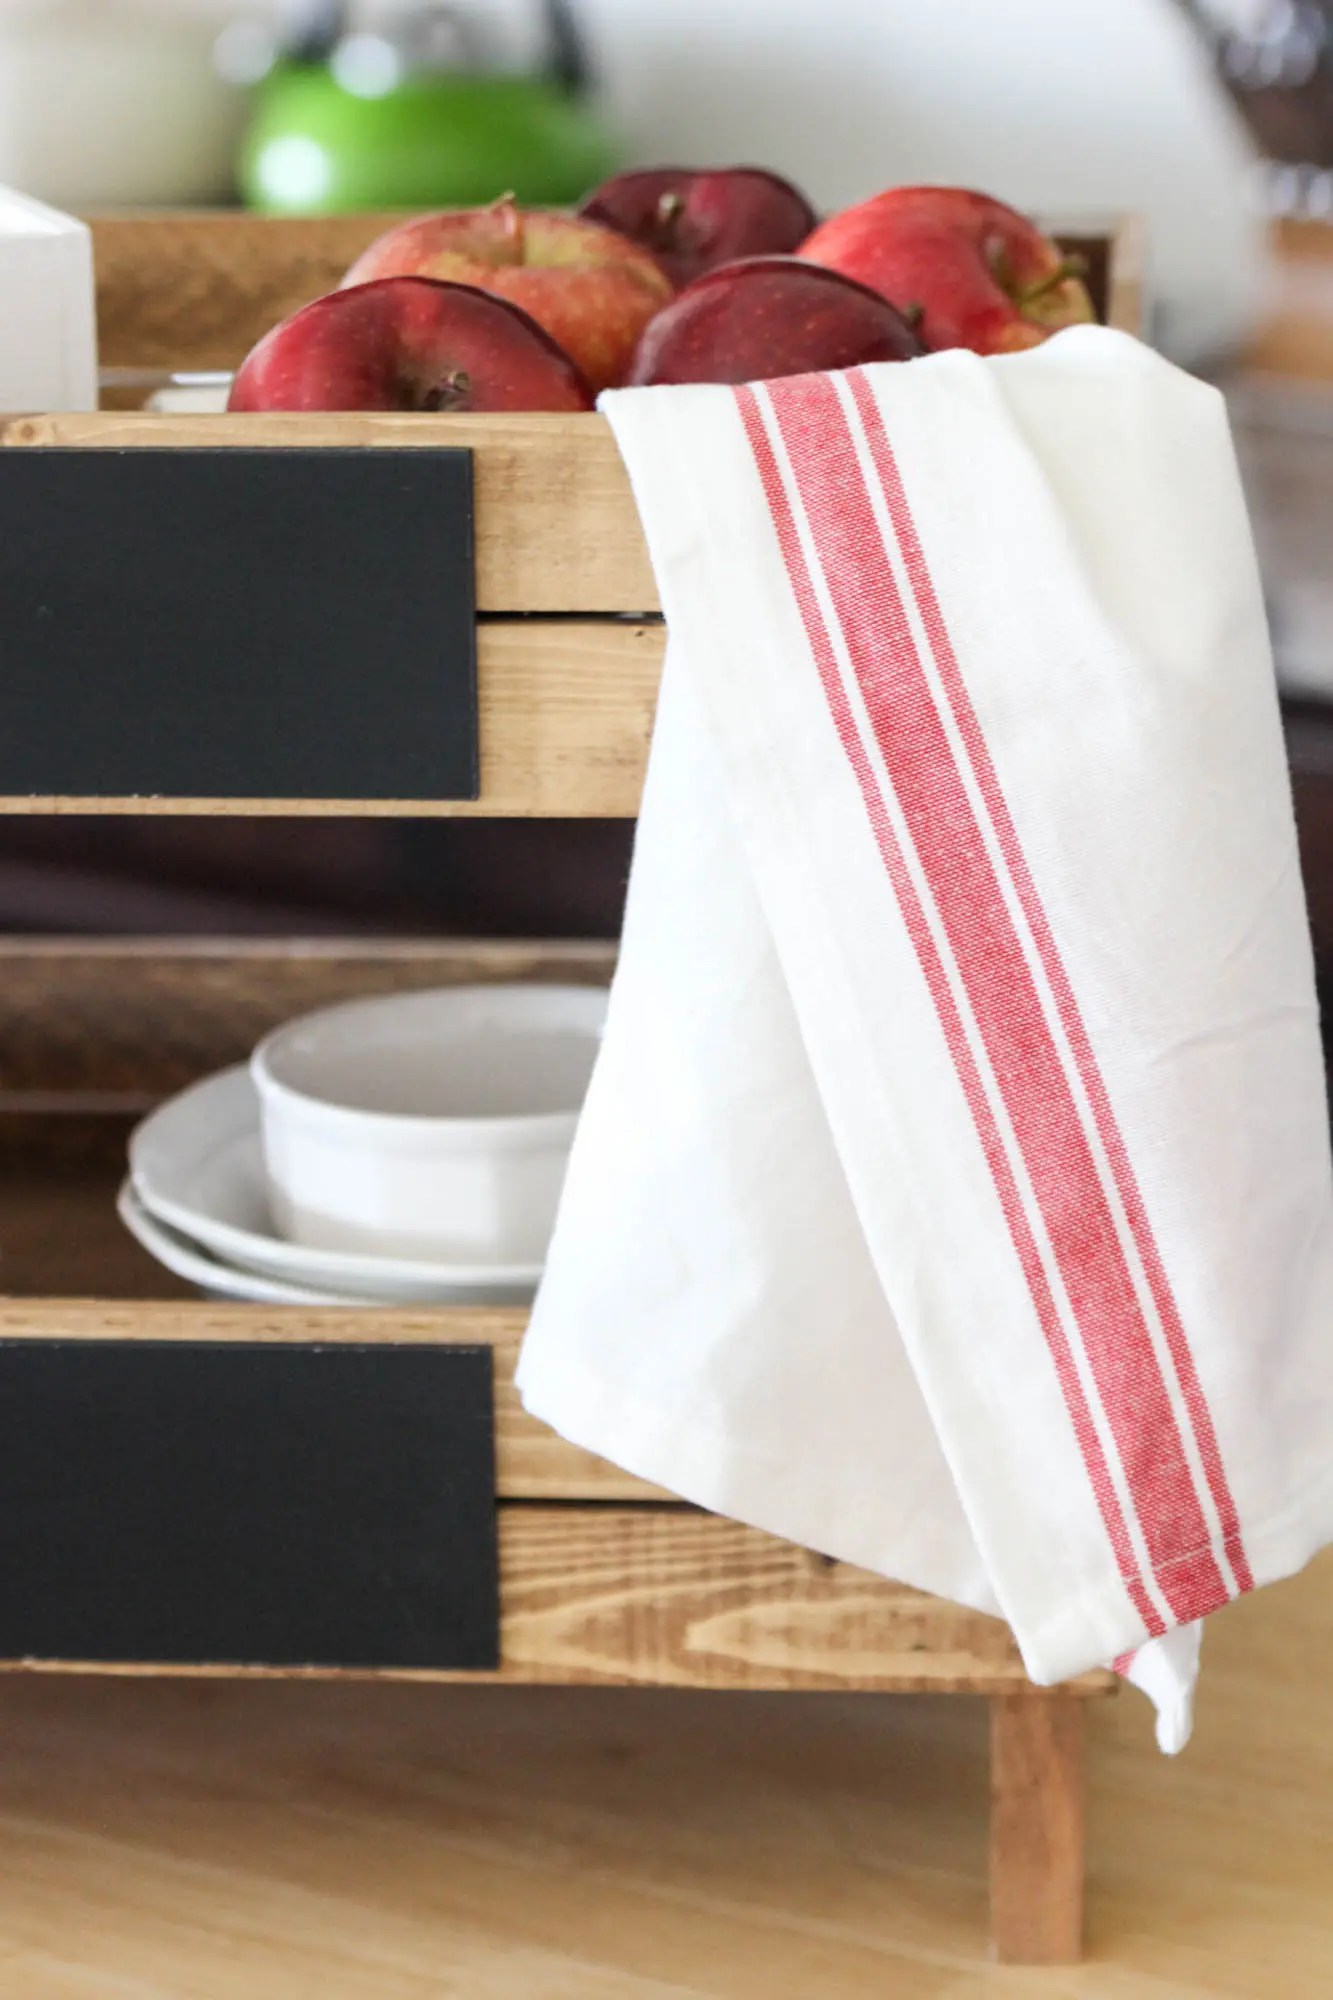 Red Kitchen Towels